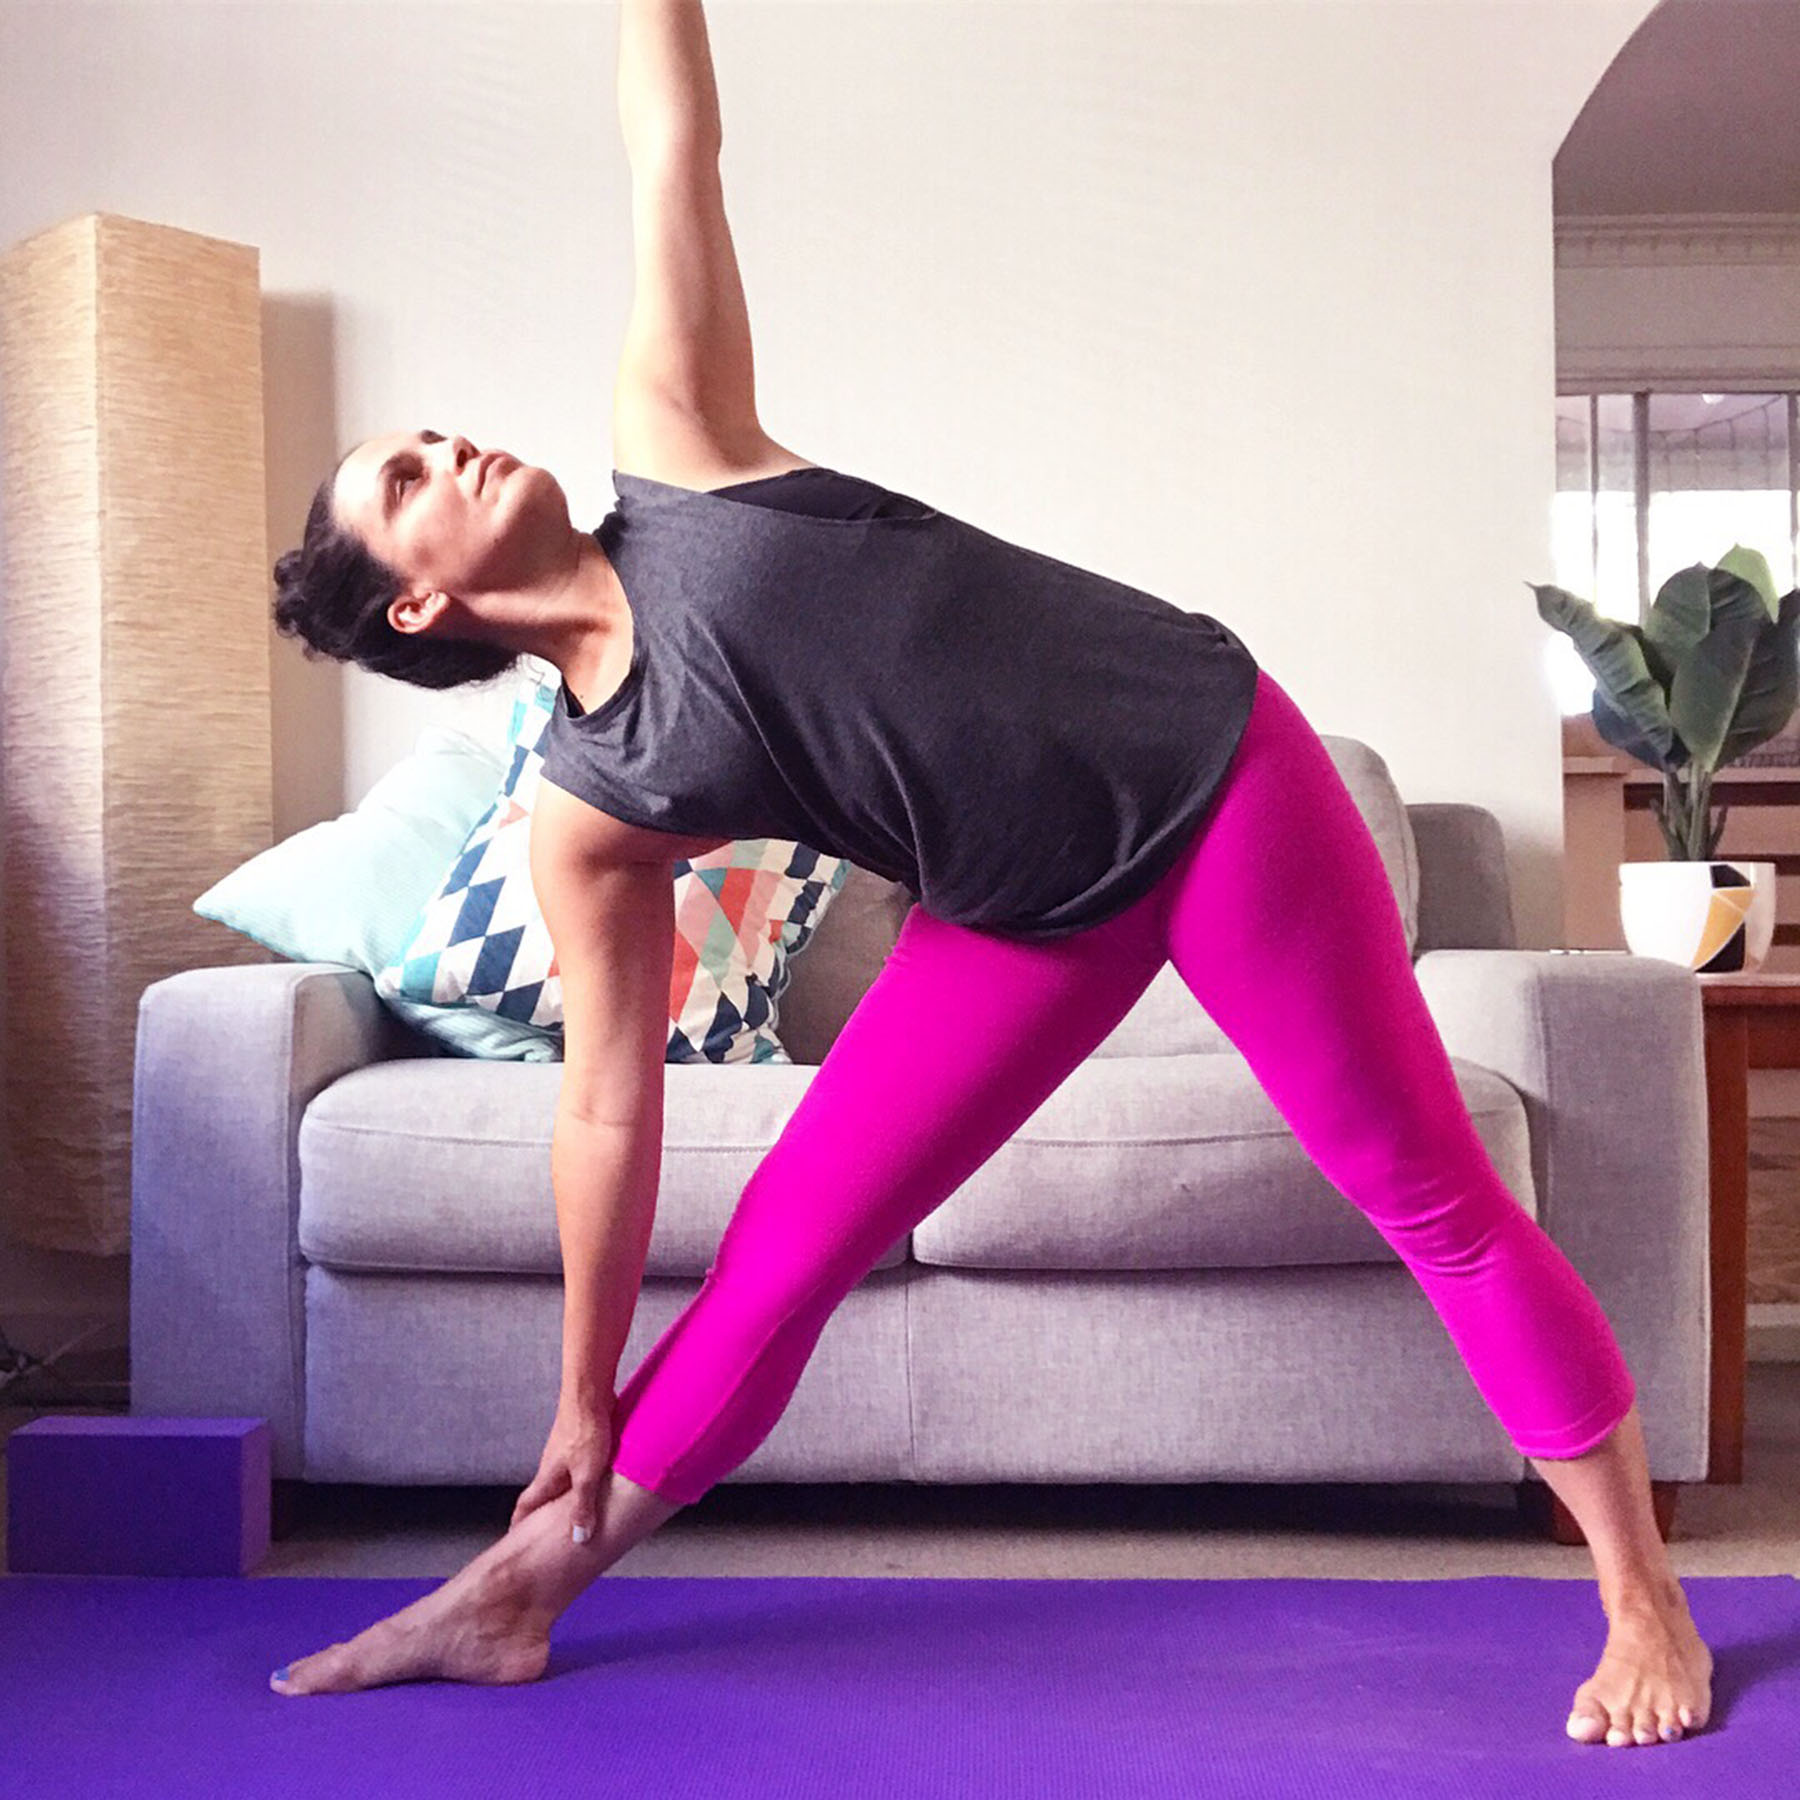 How Yoga Can Strengthen the Joints